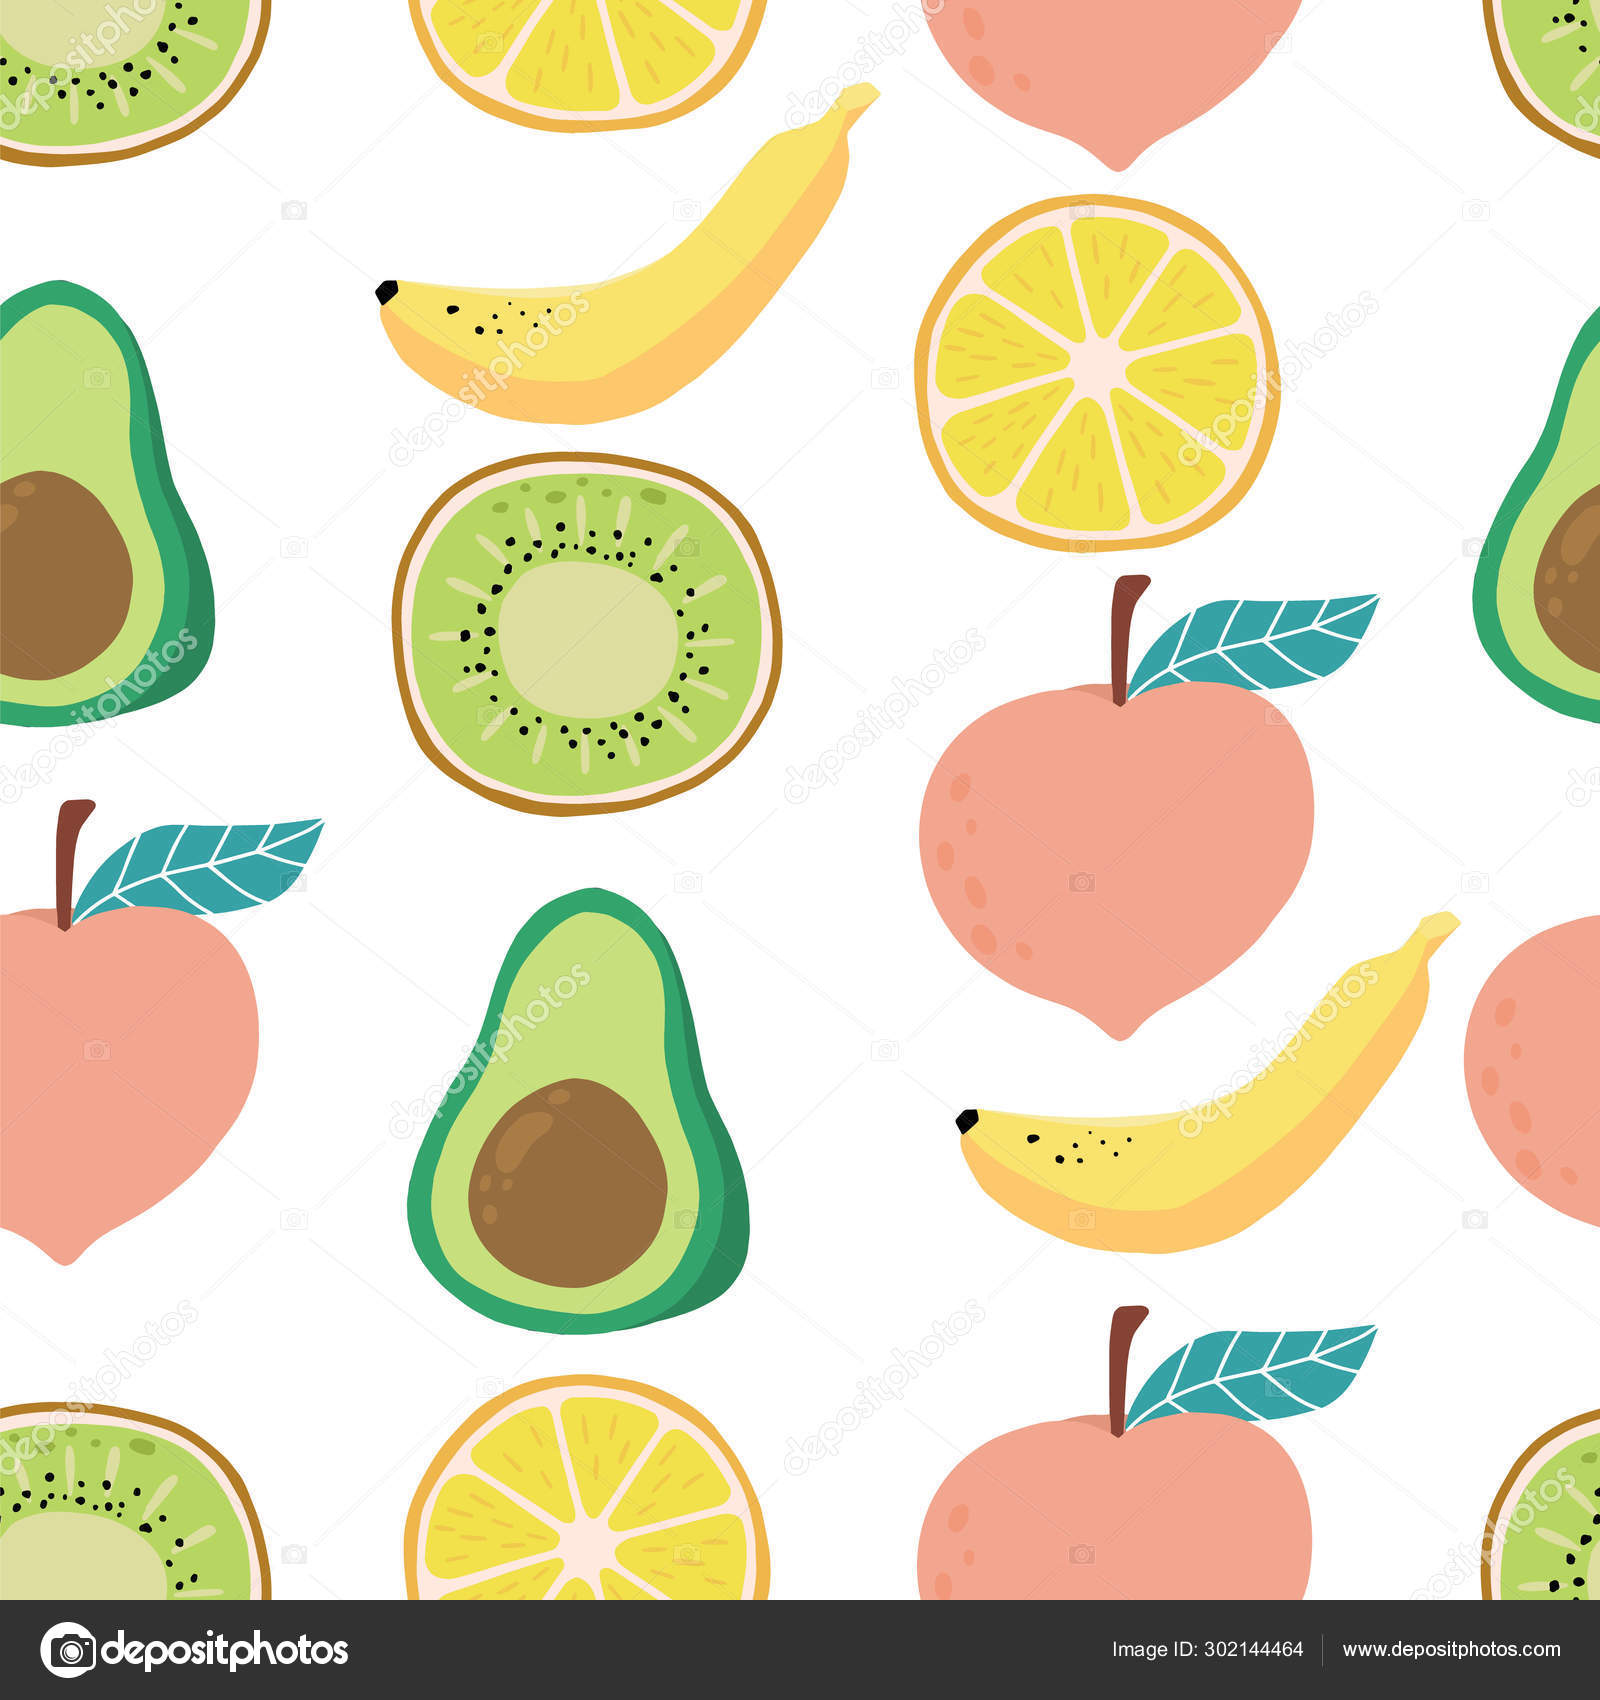 Cute Fruit Background With Lemon Kiwi Peach Banana Avocado